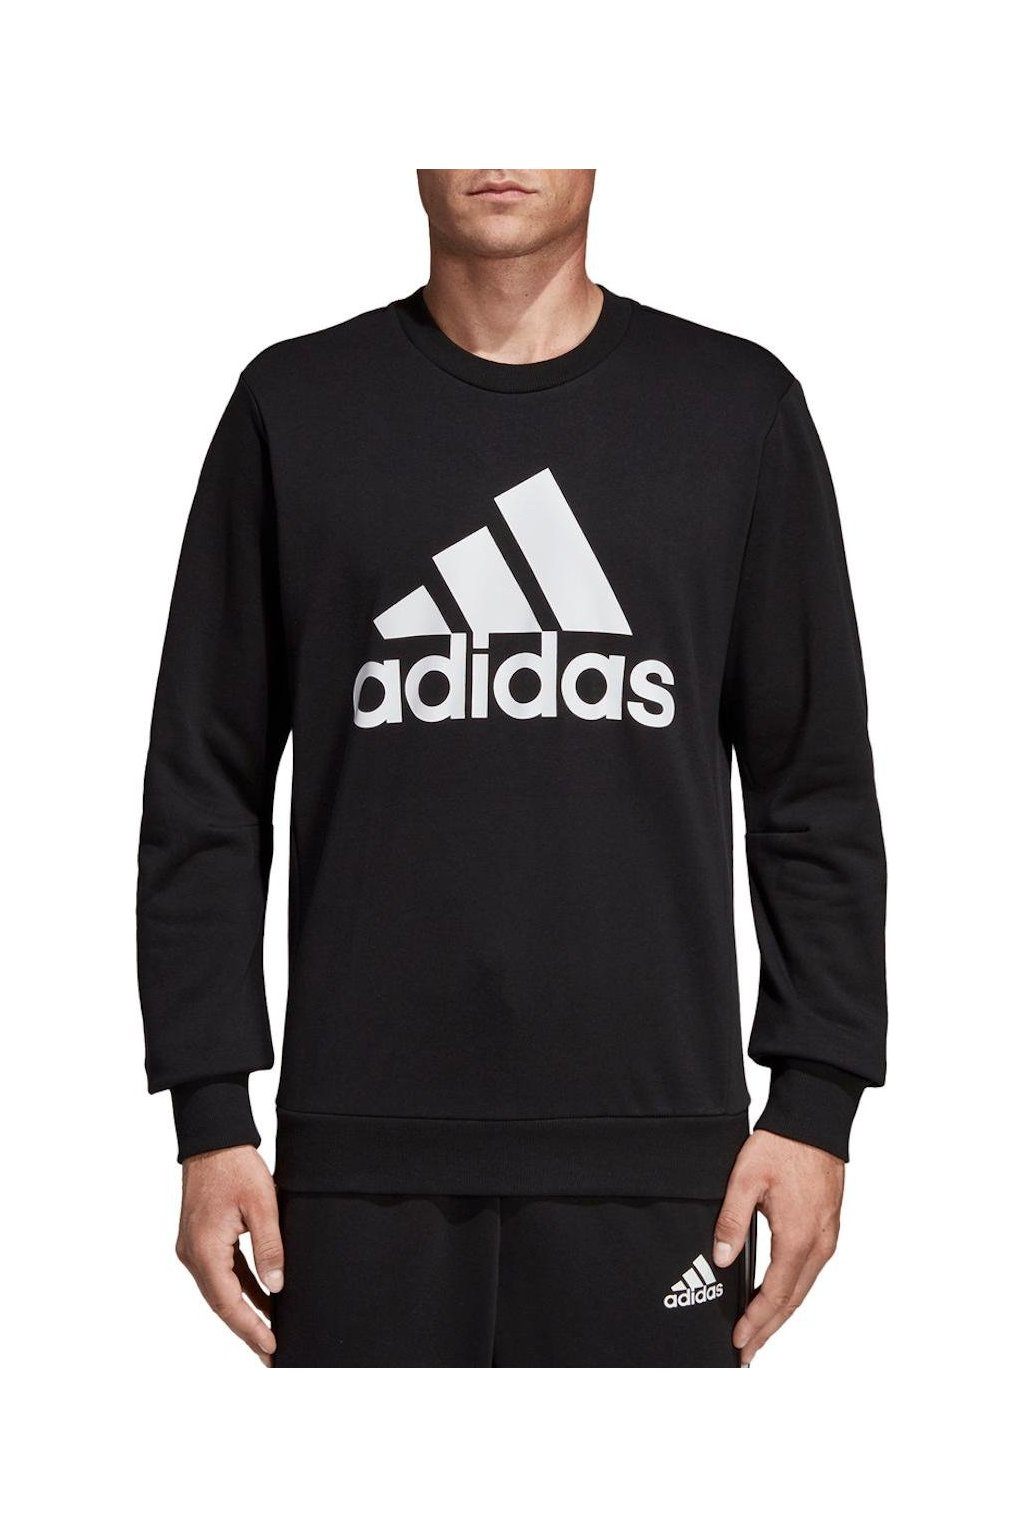 adidas mh bos crew ft 250207 dt9942